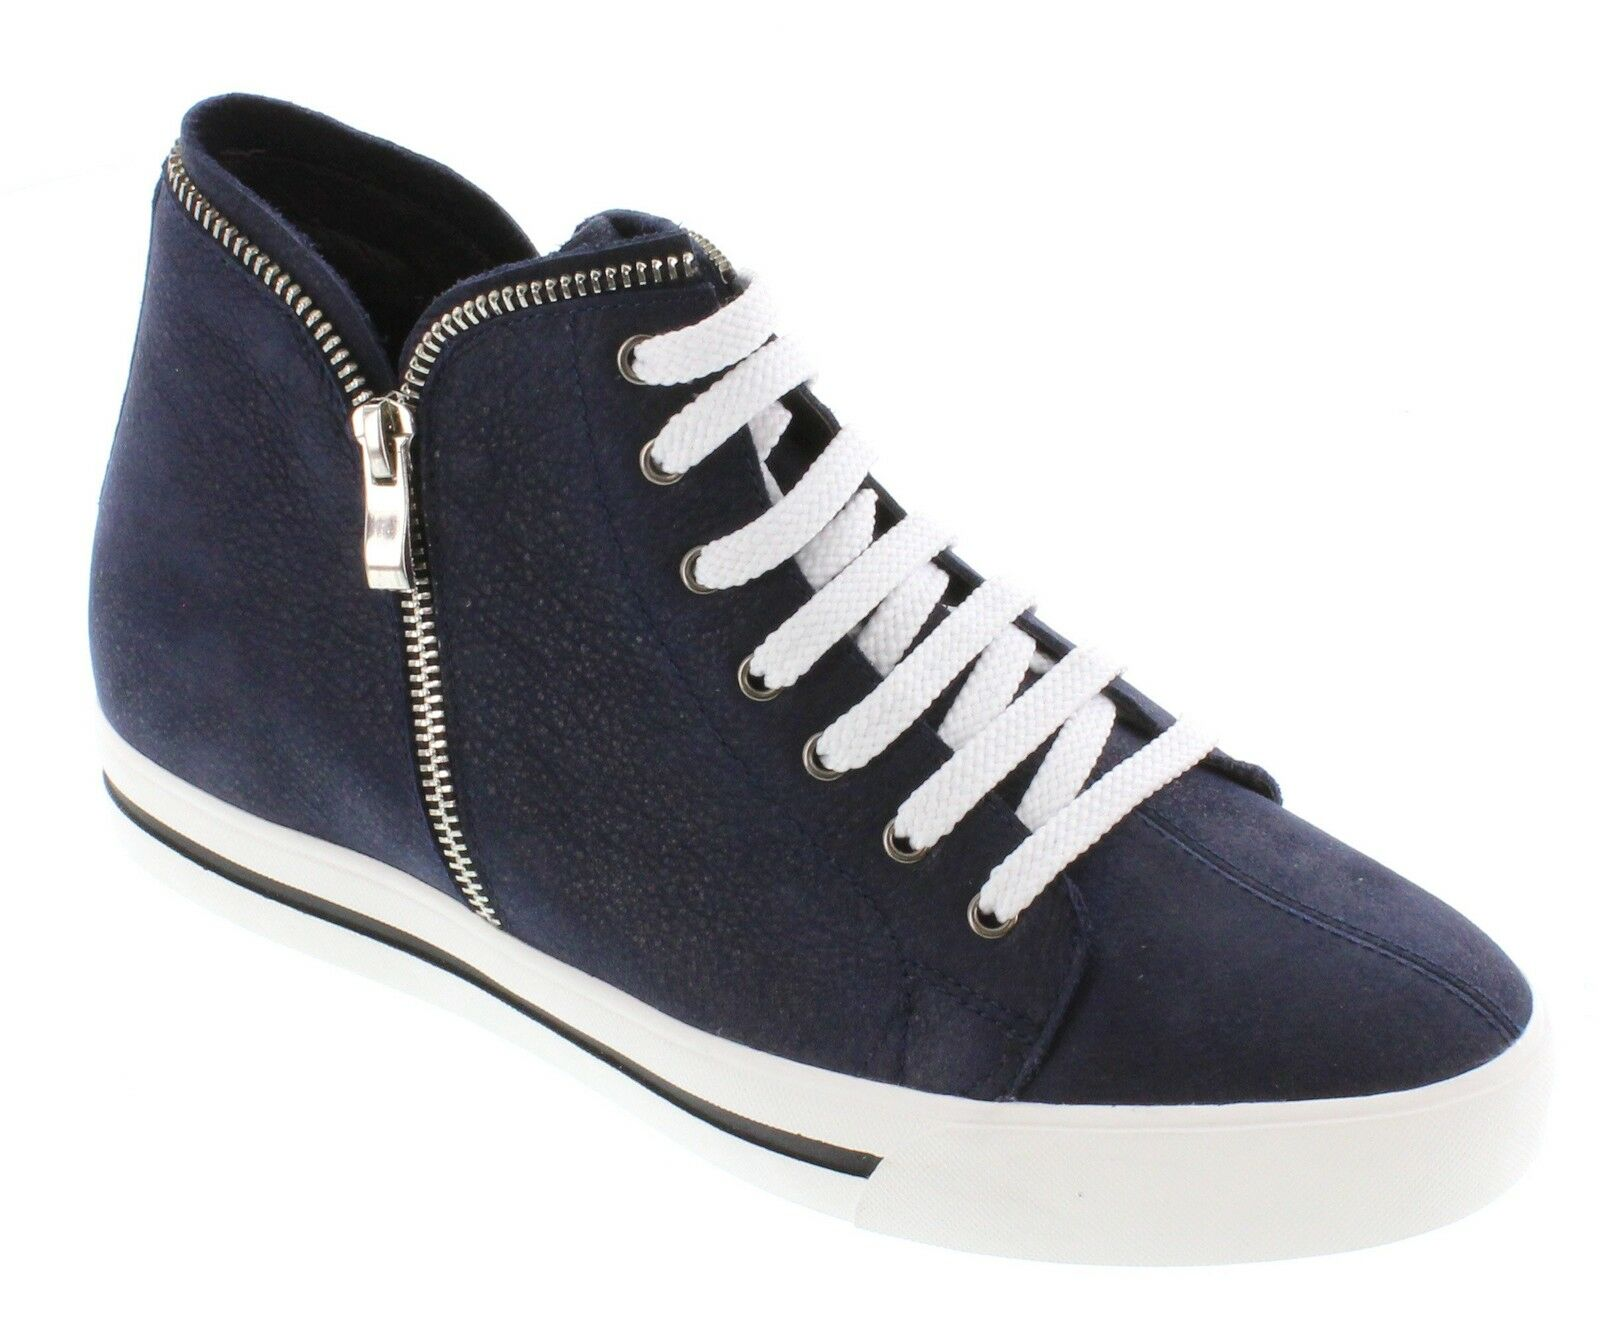 TOTO H08103 - 2.4 Inches Elevator Height Increase Navy bluee Suede Sneaker